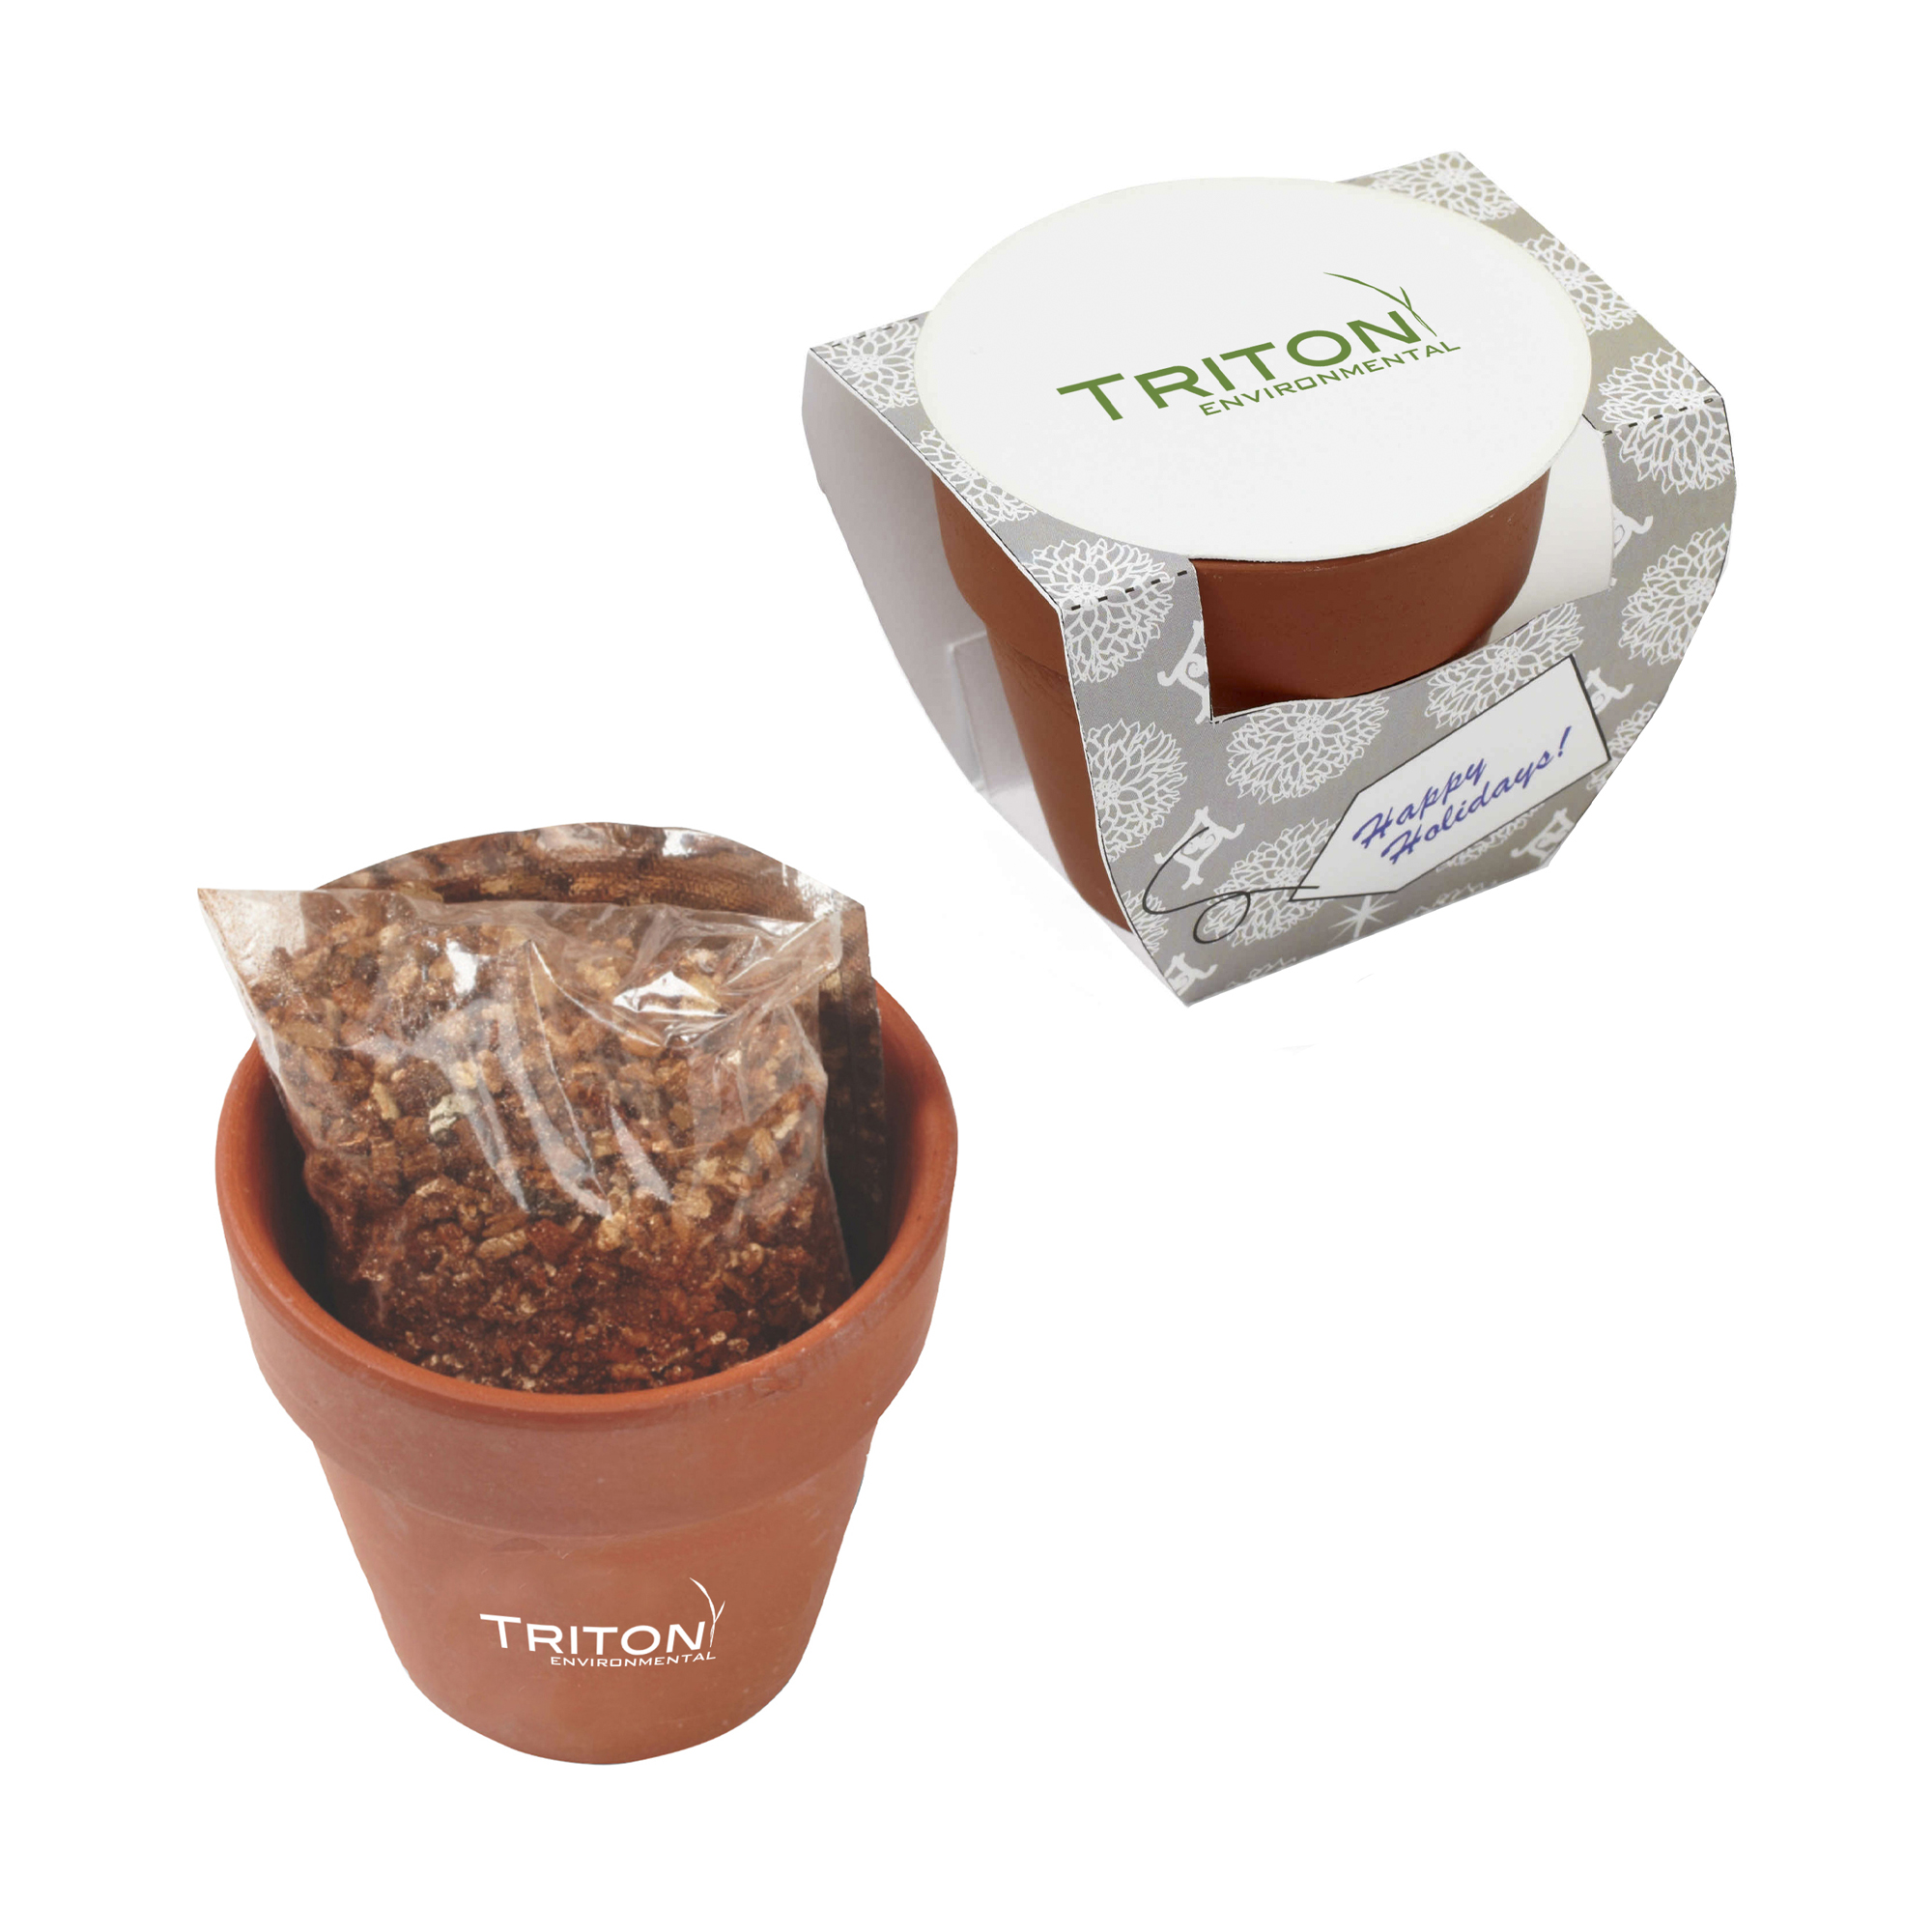 Seed Sensations Terracotta Pot With Holiday Wrapper